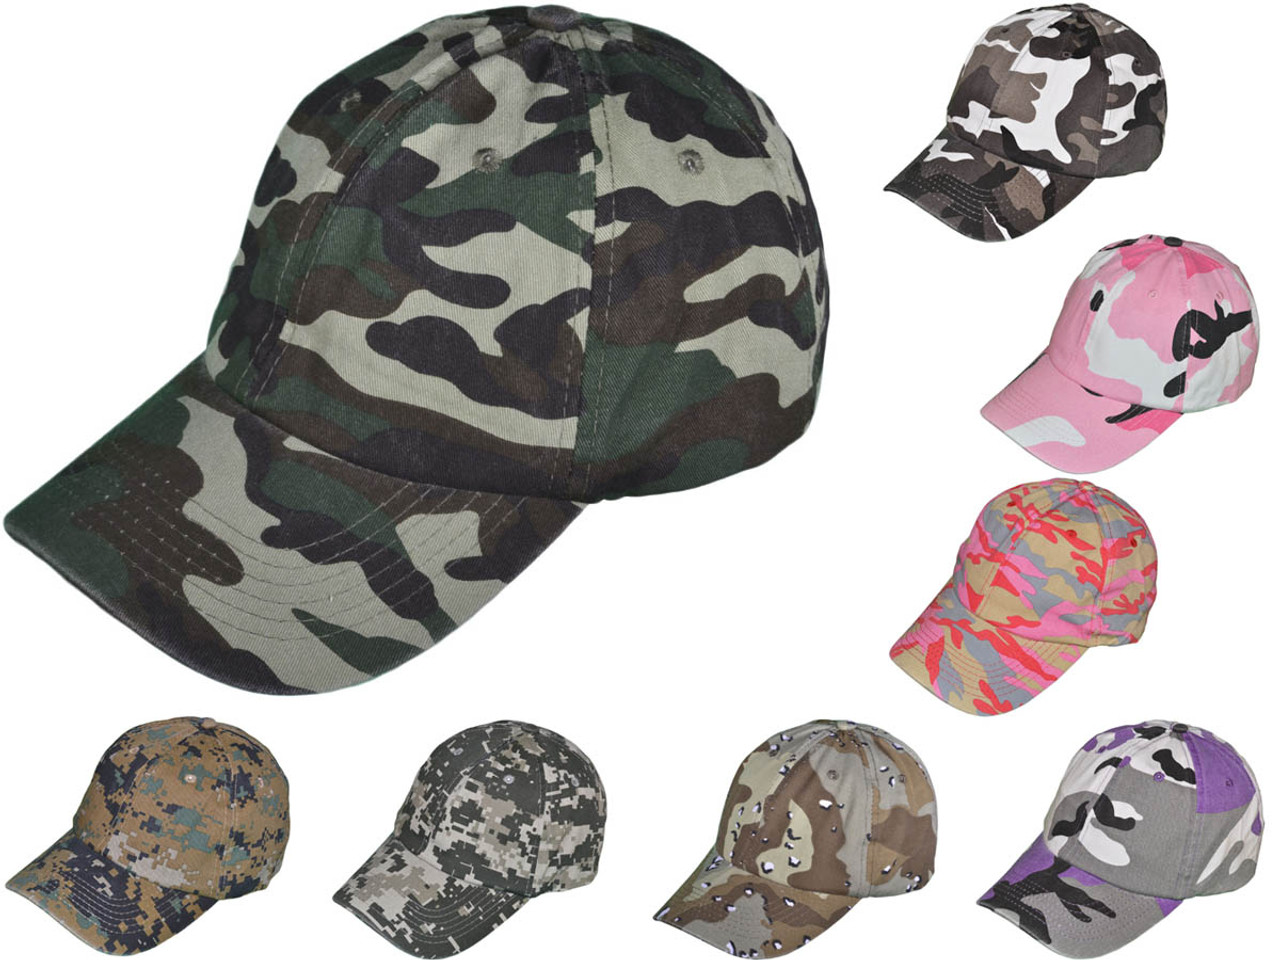 219d08431 Camo Dad Hats - BK Caps Unisex Cotton Polo Unstructured Low Profile  Baseball Caps With Buckle Back Closure (8 Colors) - 5232